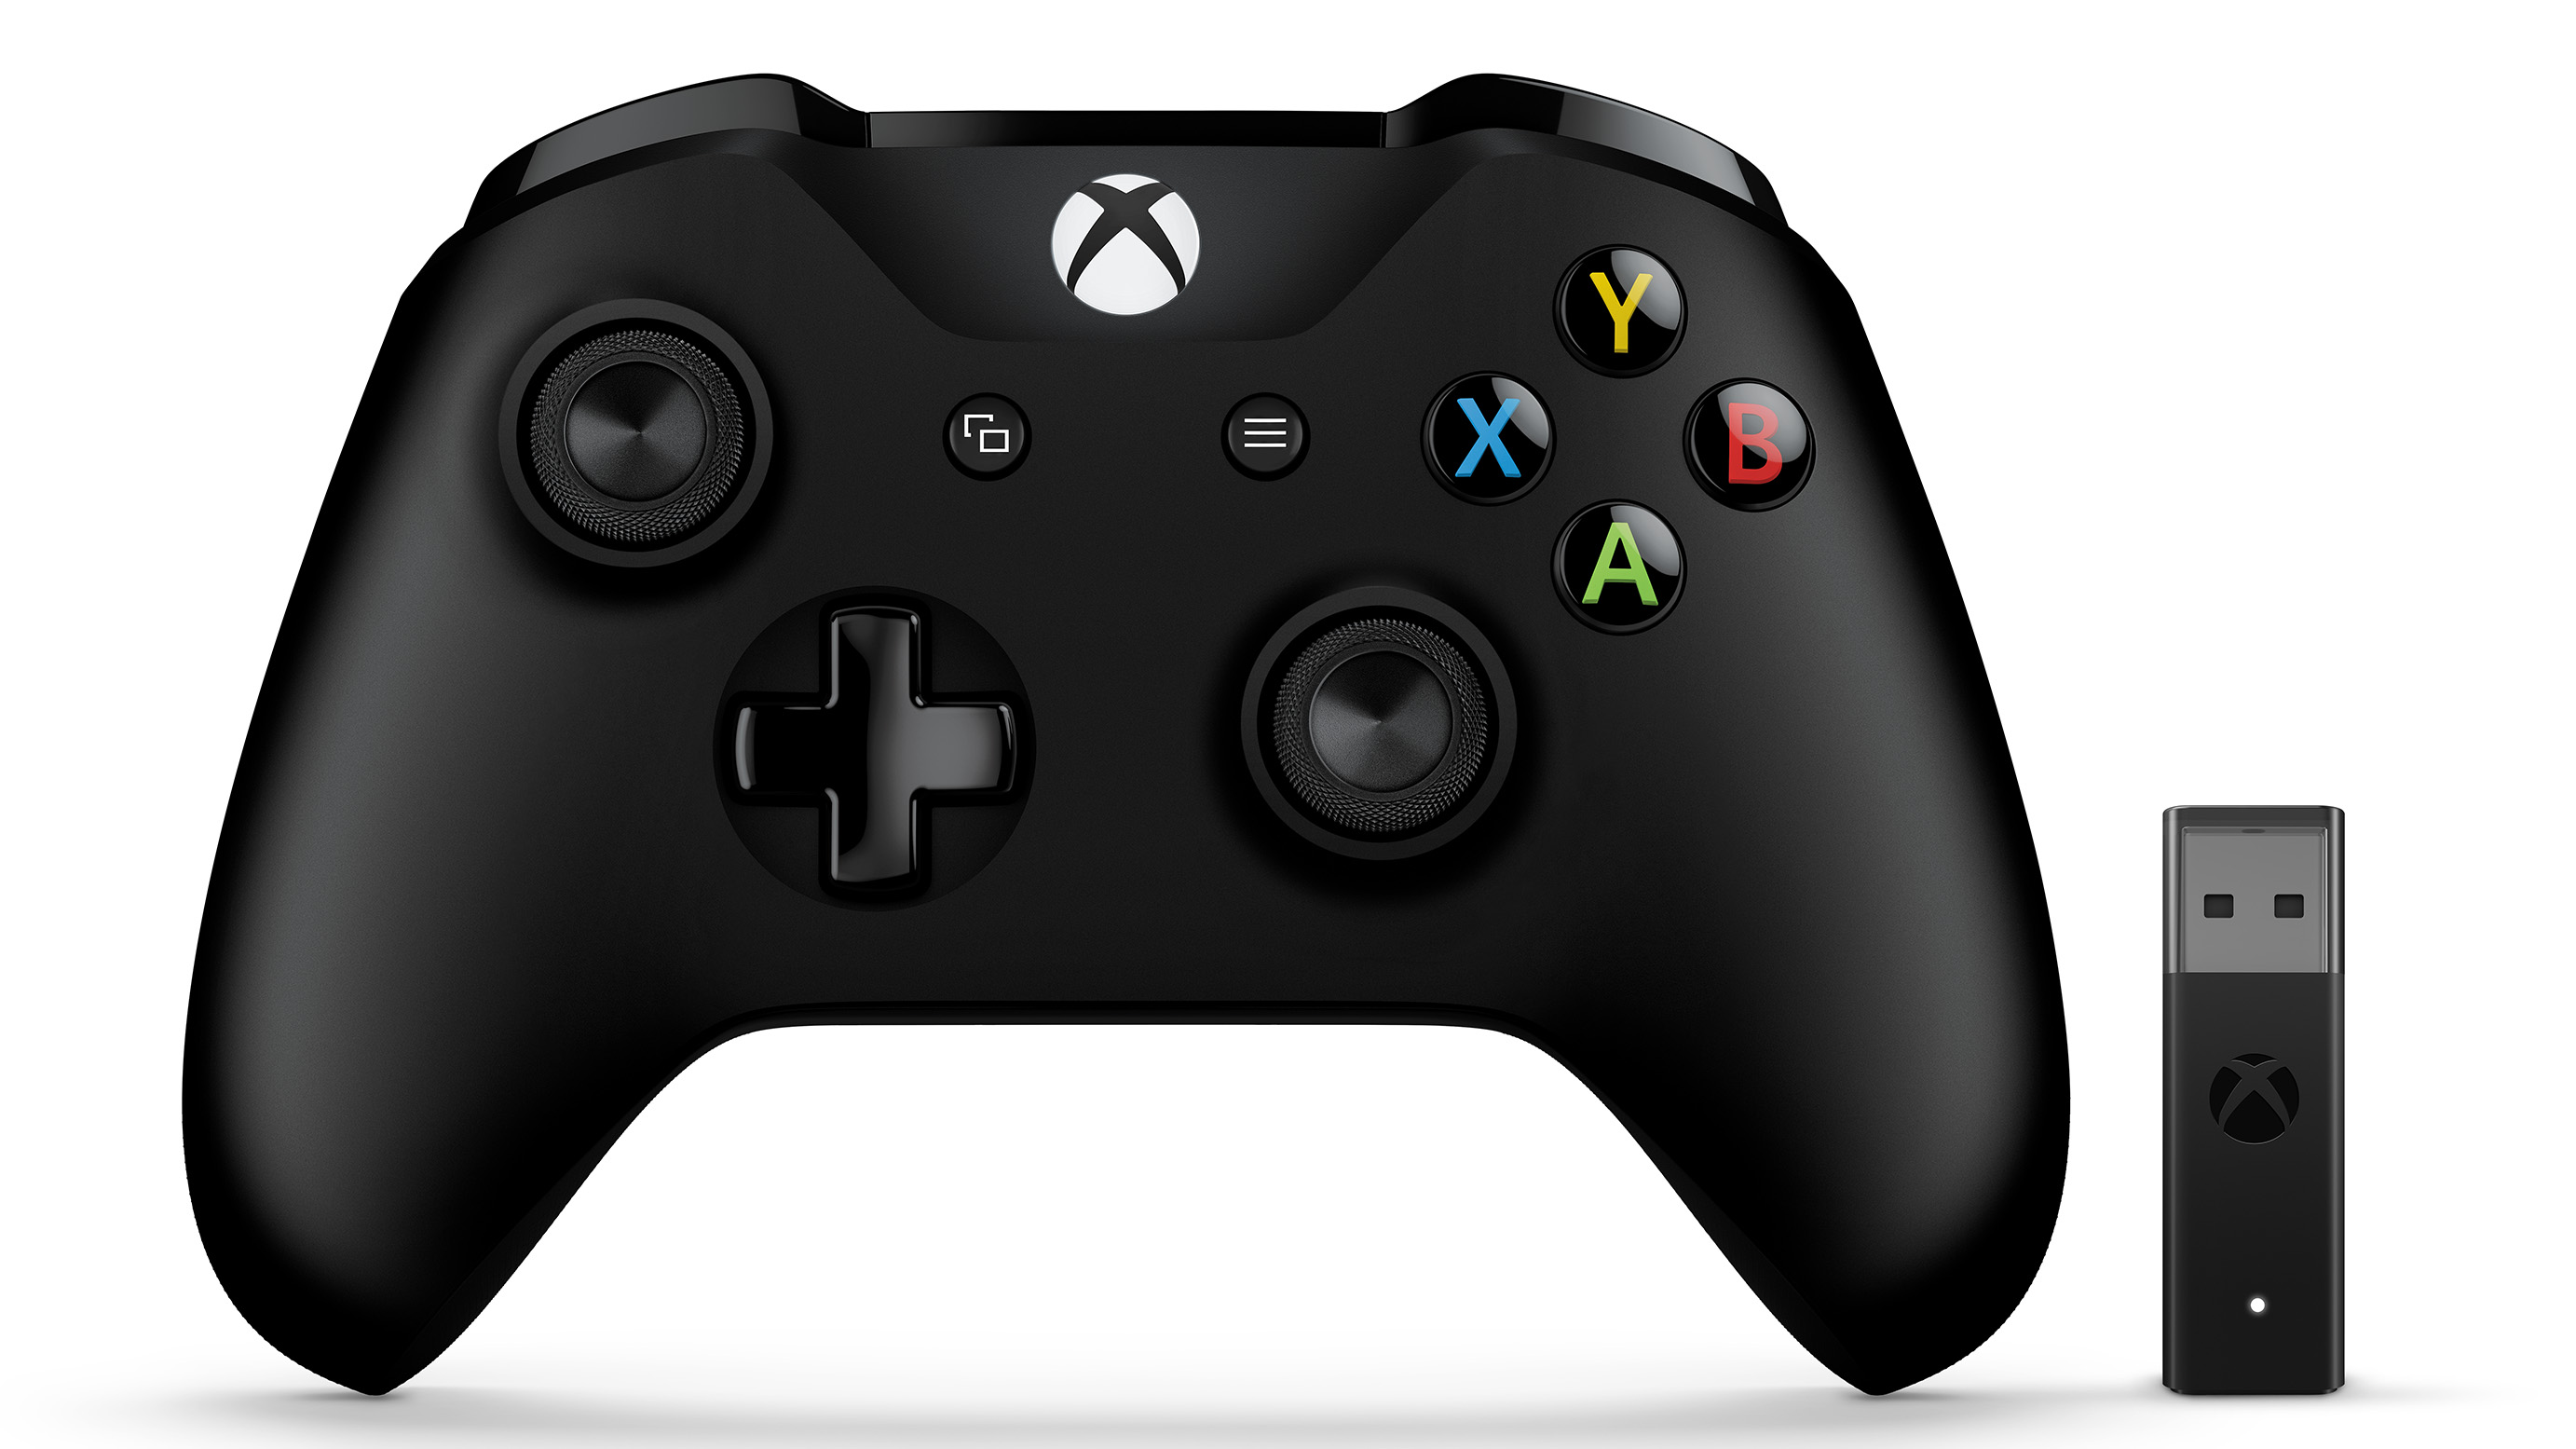 Xbox Controller and Wireless Adapter